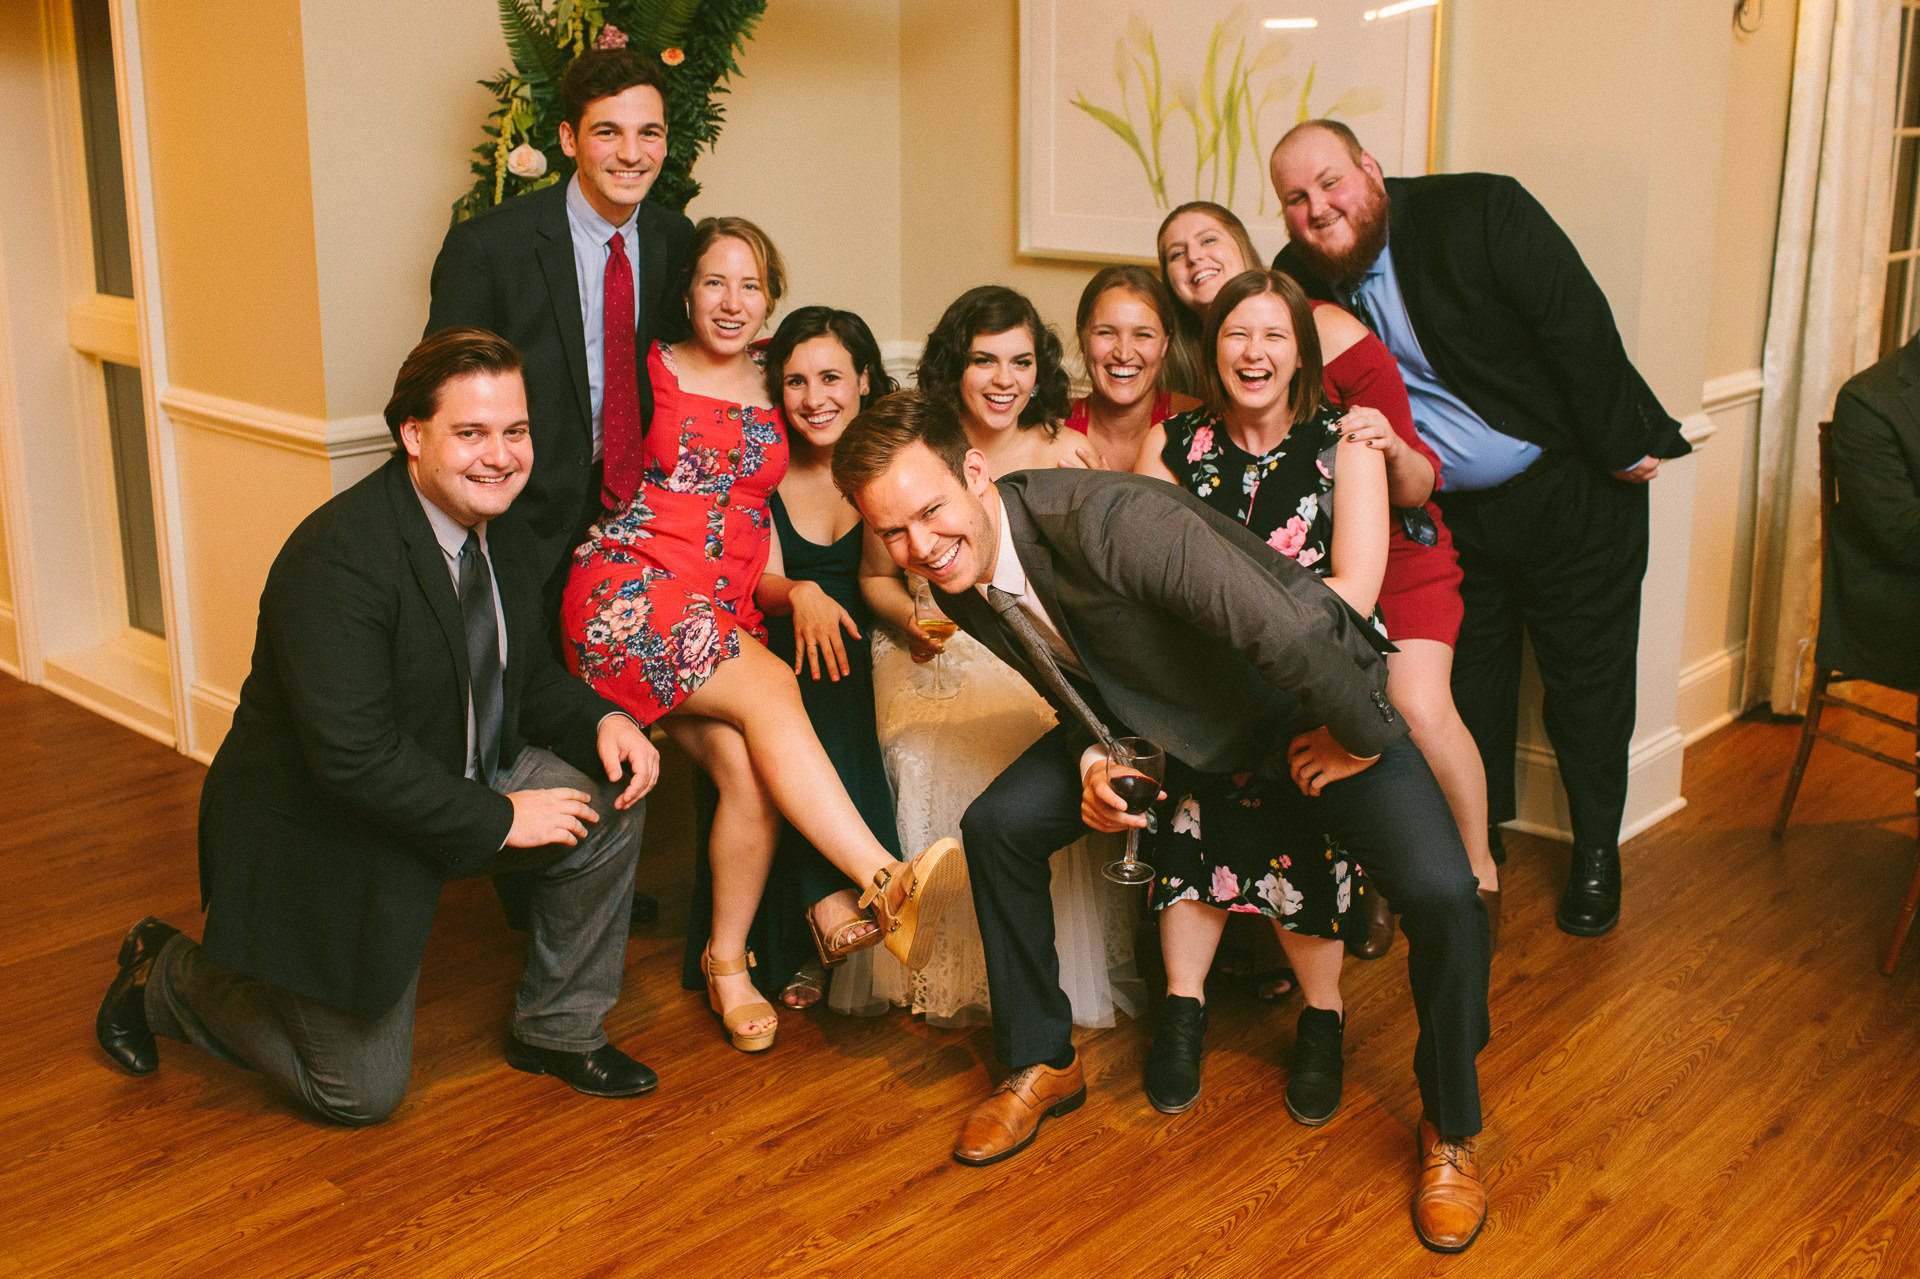 Wedding at the Glidden House in Cleveland 2 33.jpg